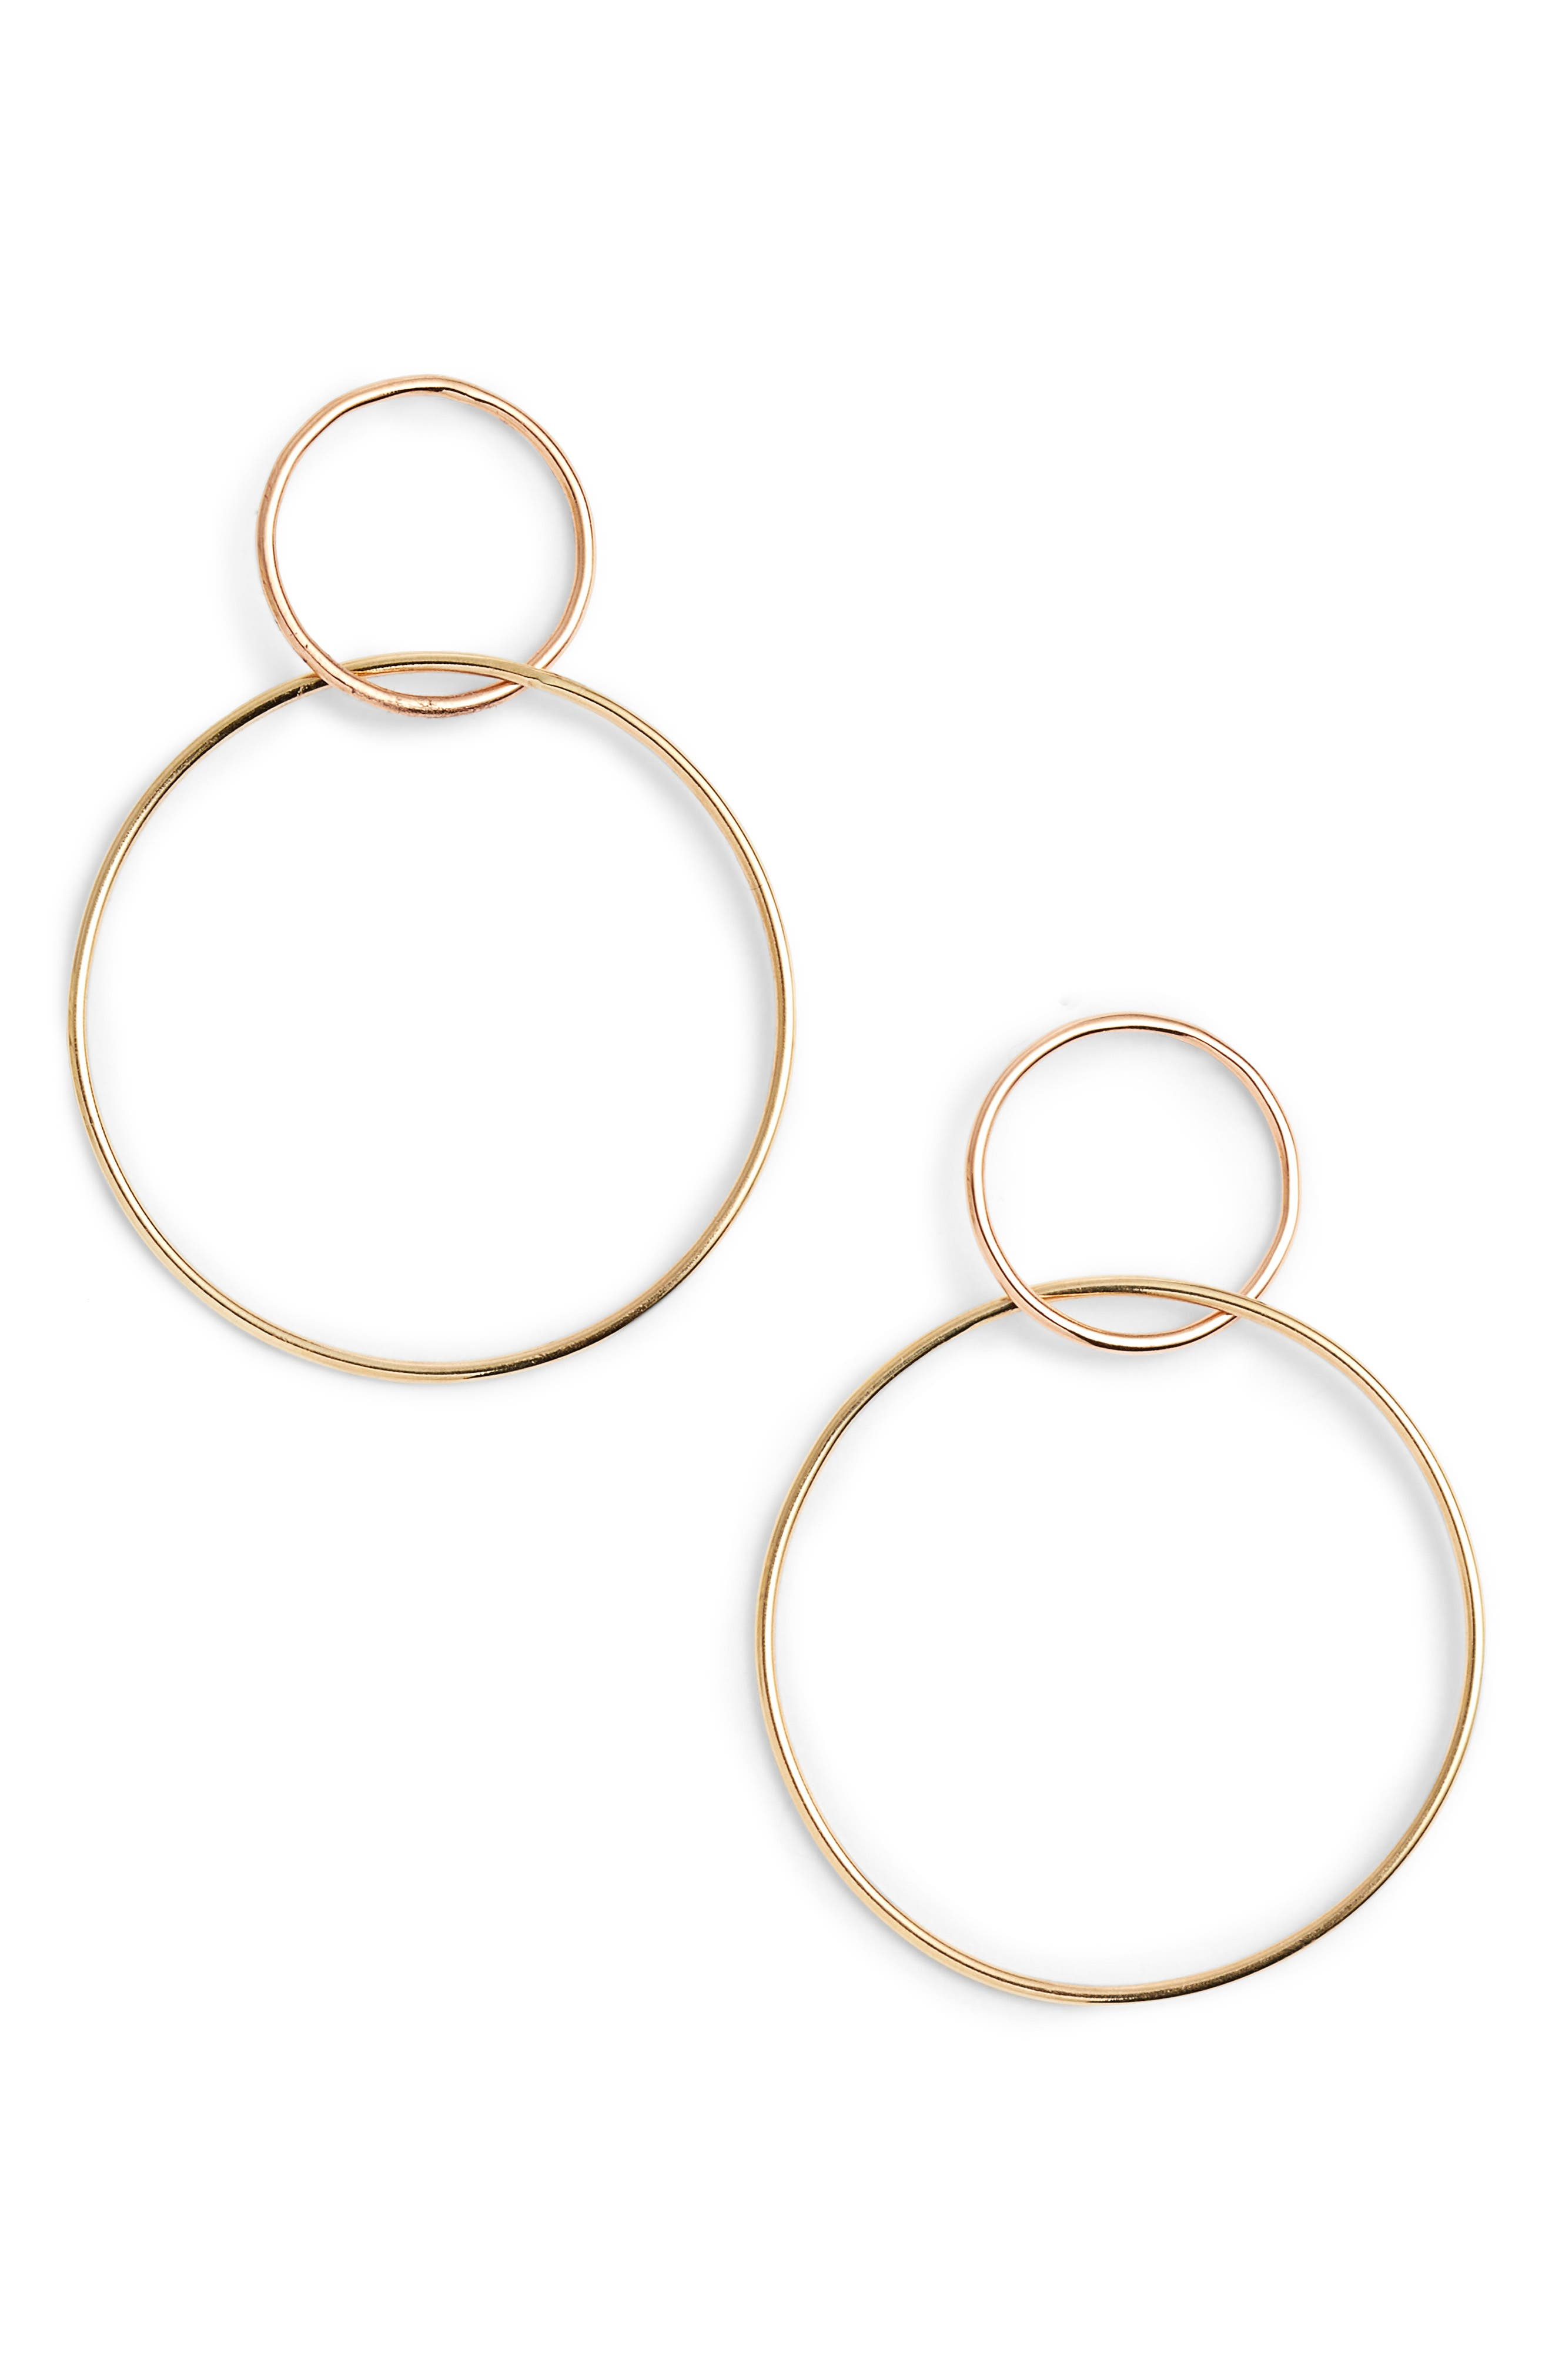 Two Tone Double Loop Earrings,                             Main thumbnail 1, color,                             YELLOW GOLD/ WHITE GOLD